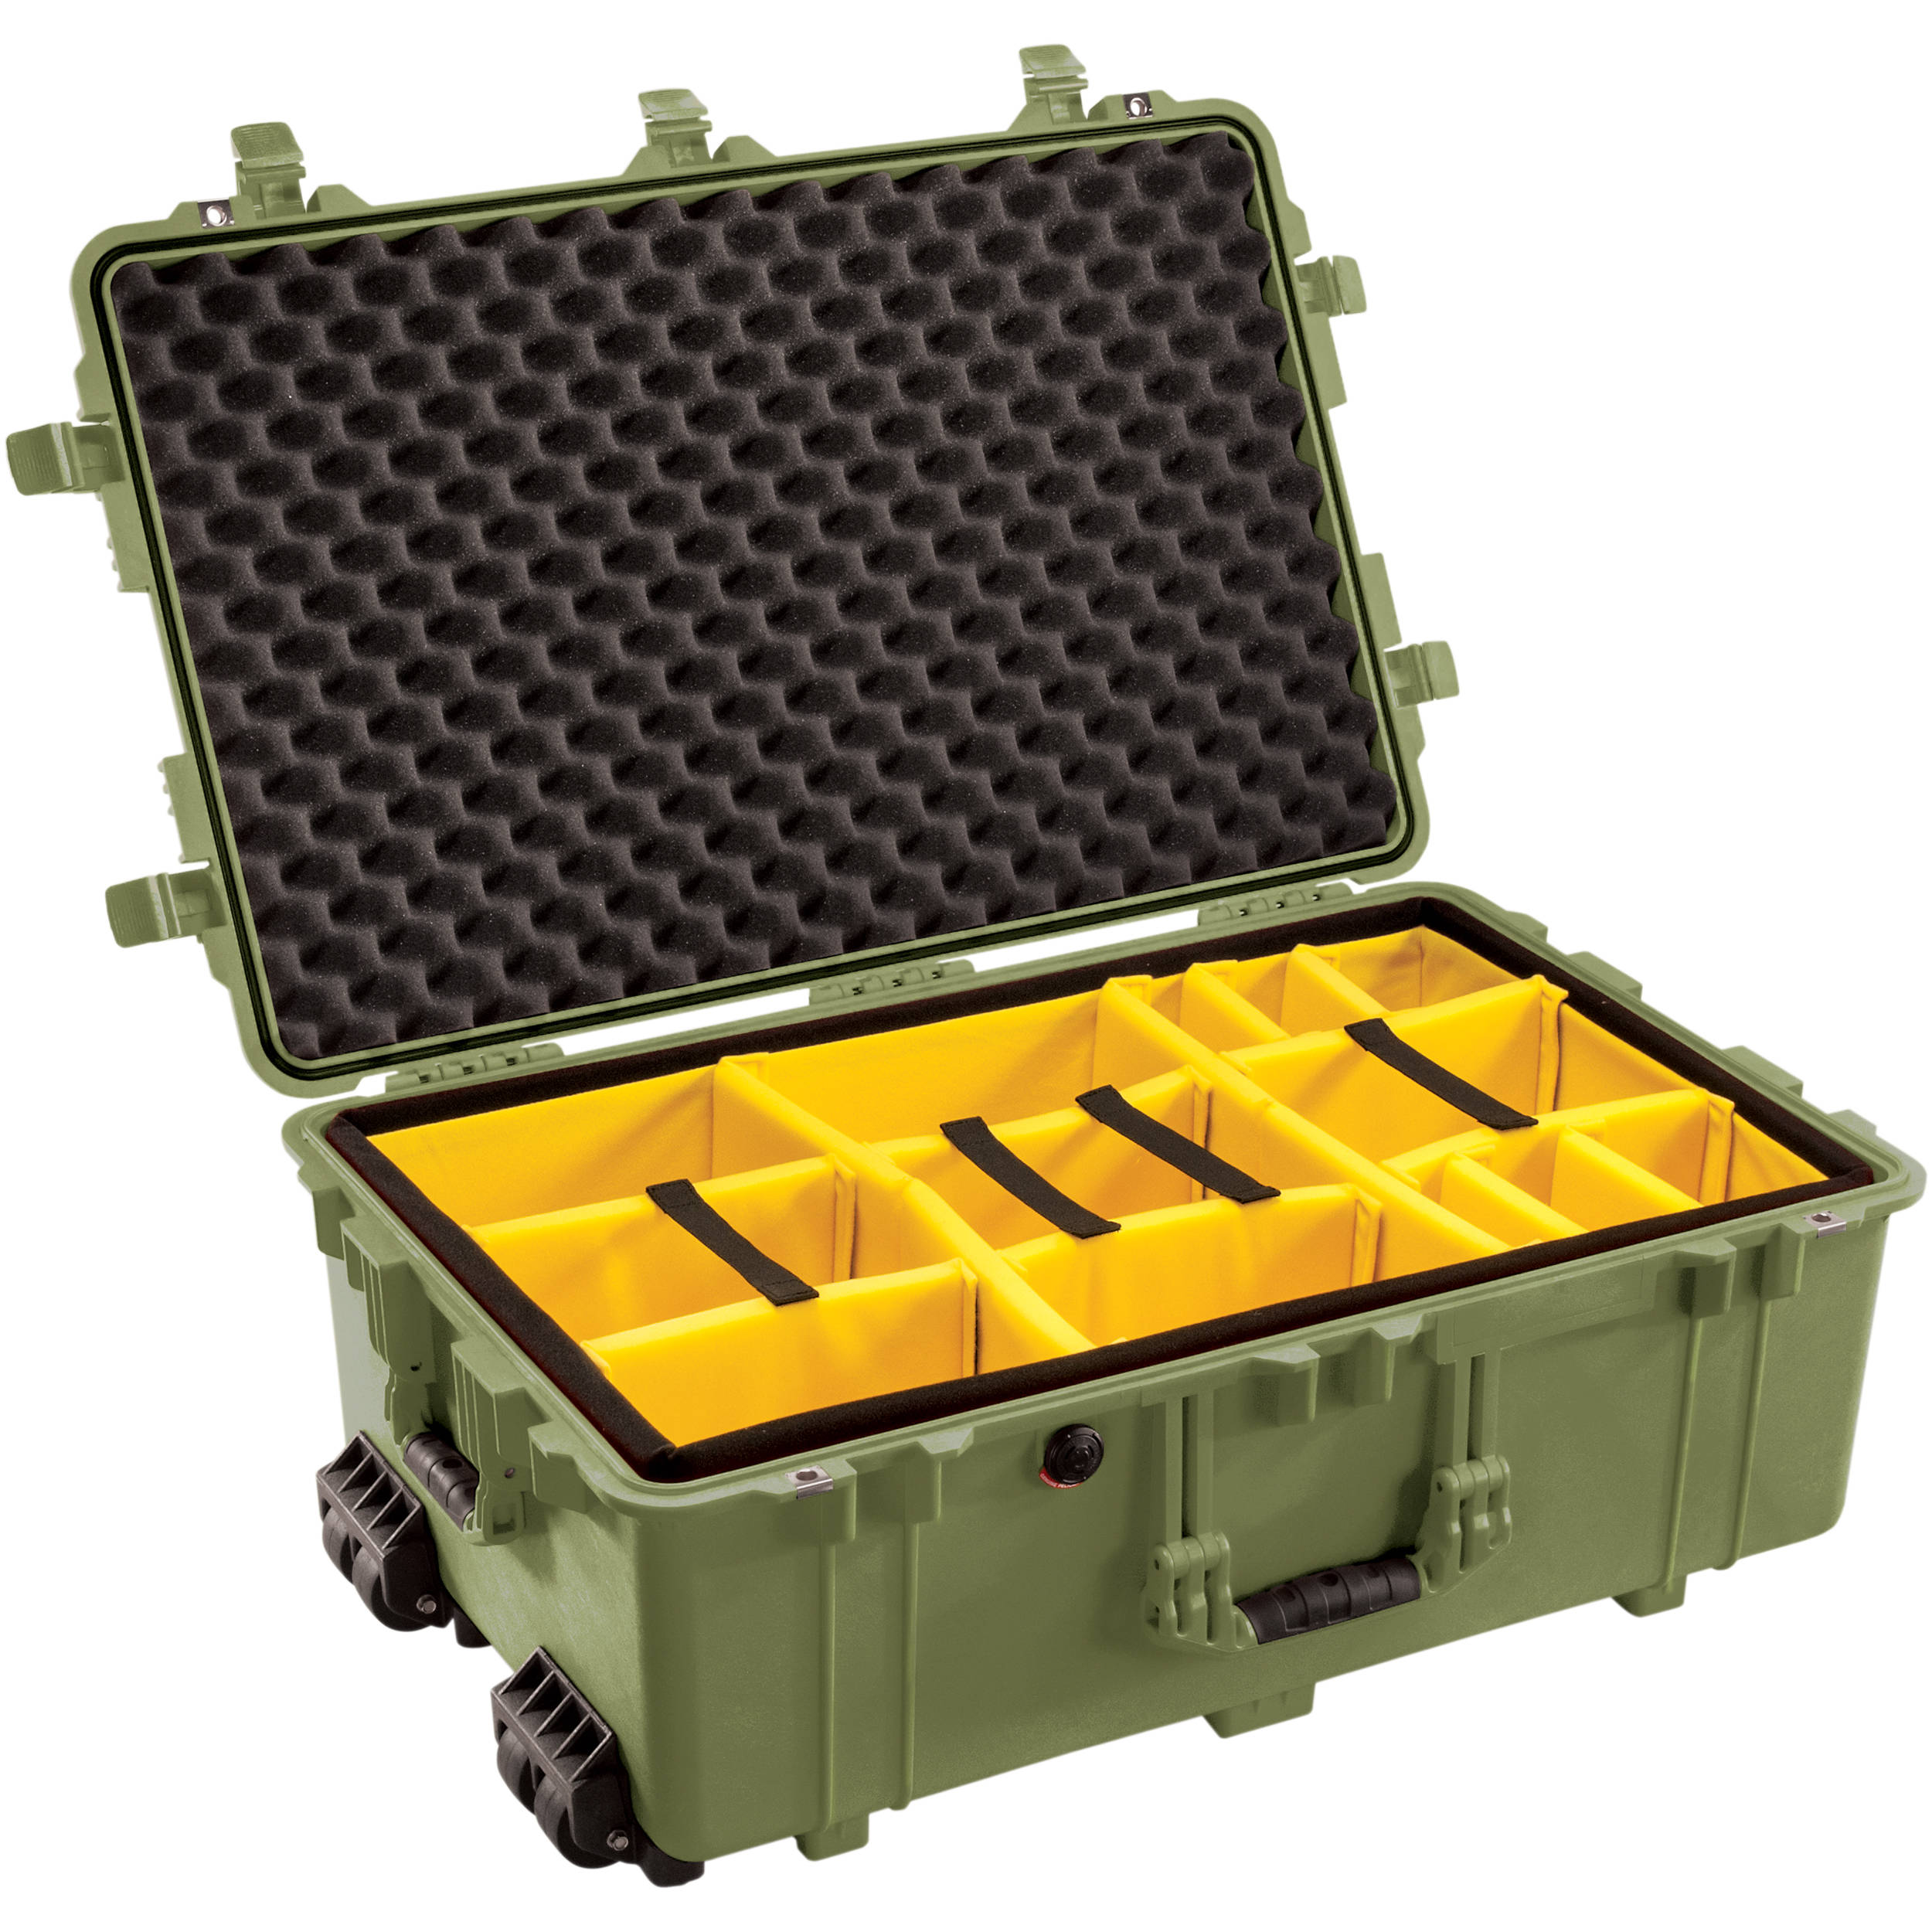 New 2019 TrekPak Dividers for the Pelican 1610 Includes 2 Extra Divider pieces